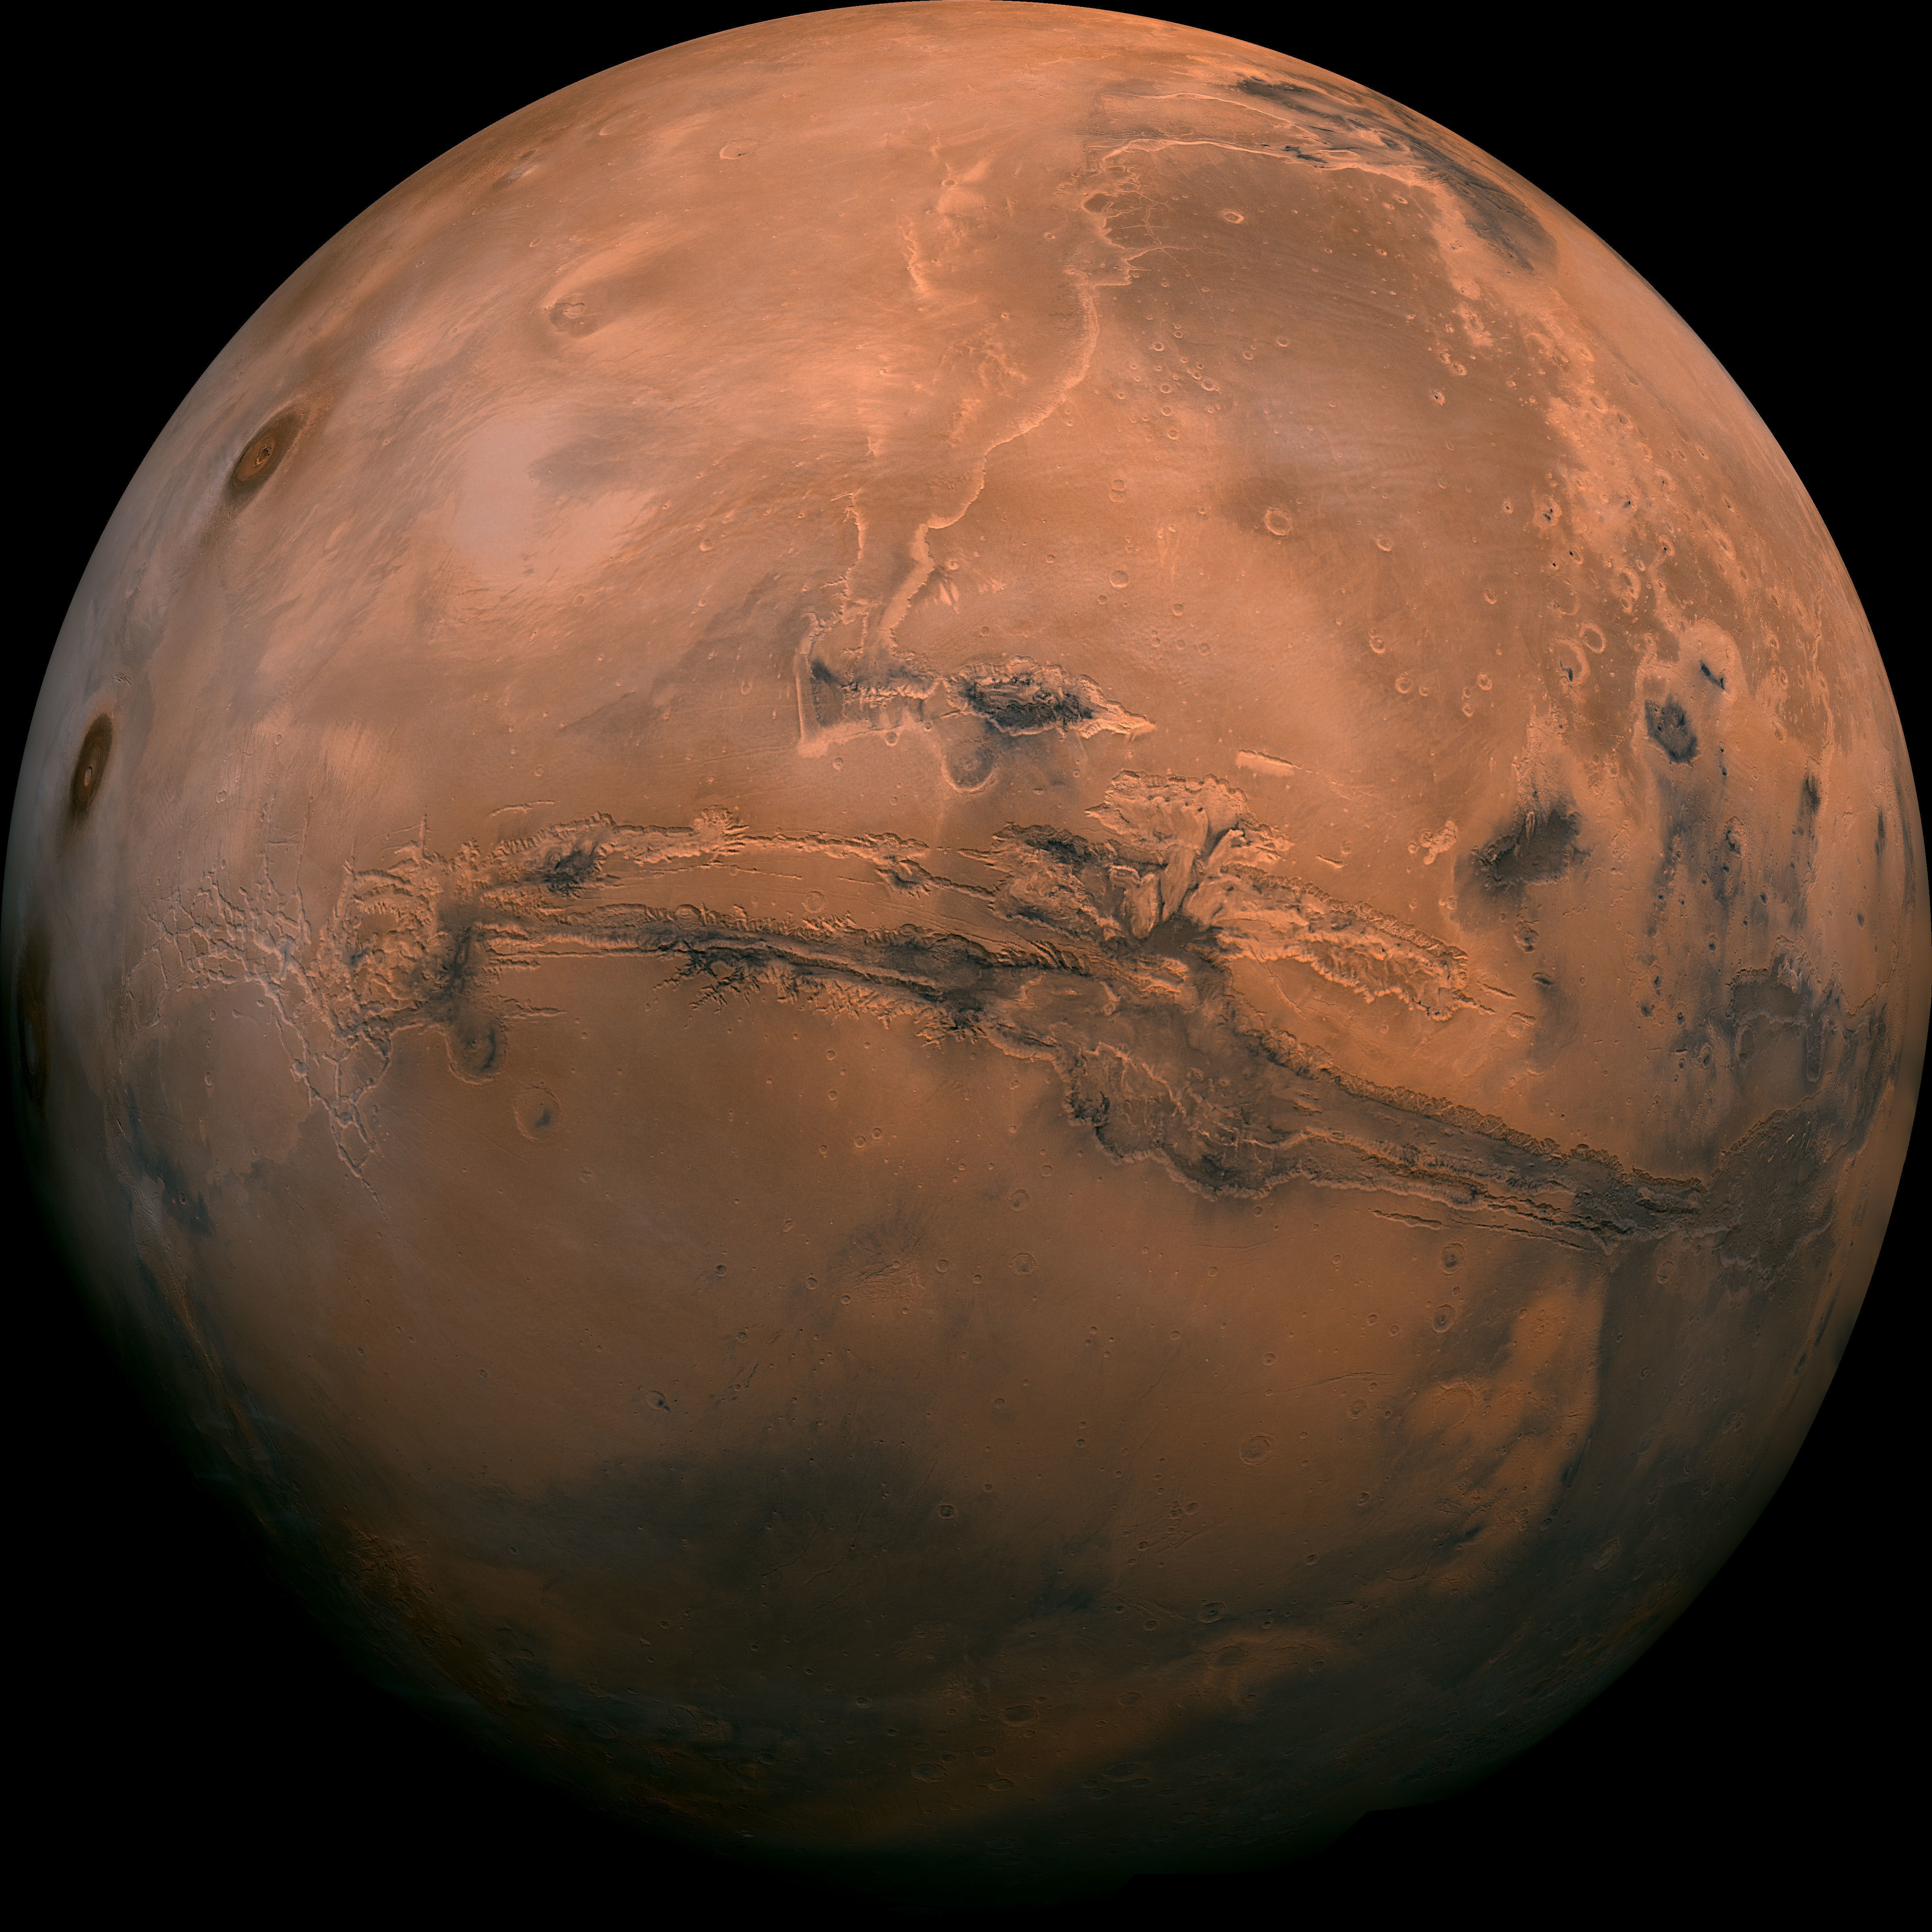 New lander will add to humans' long fascination with Mars